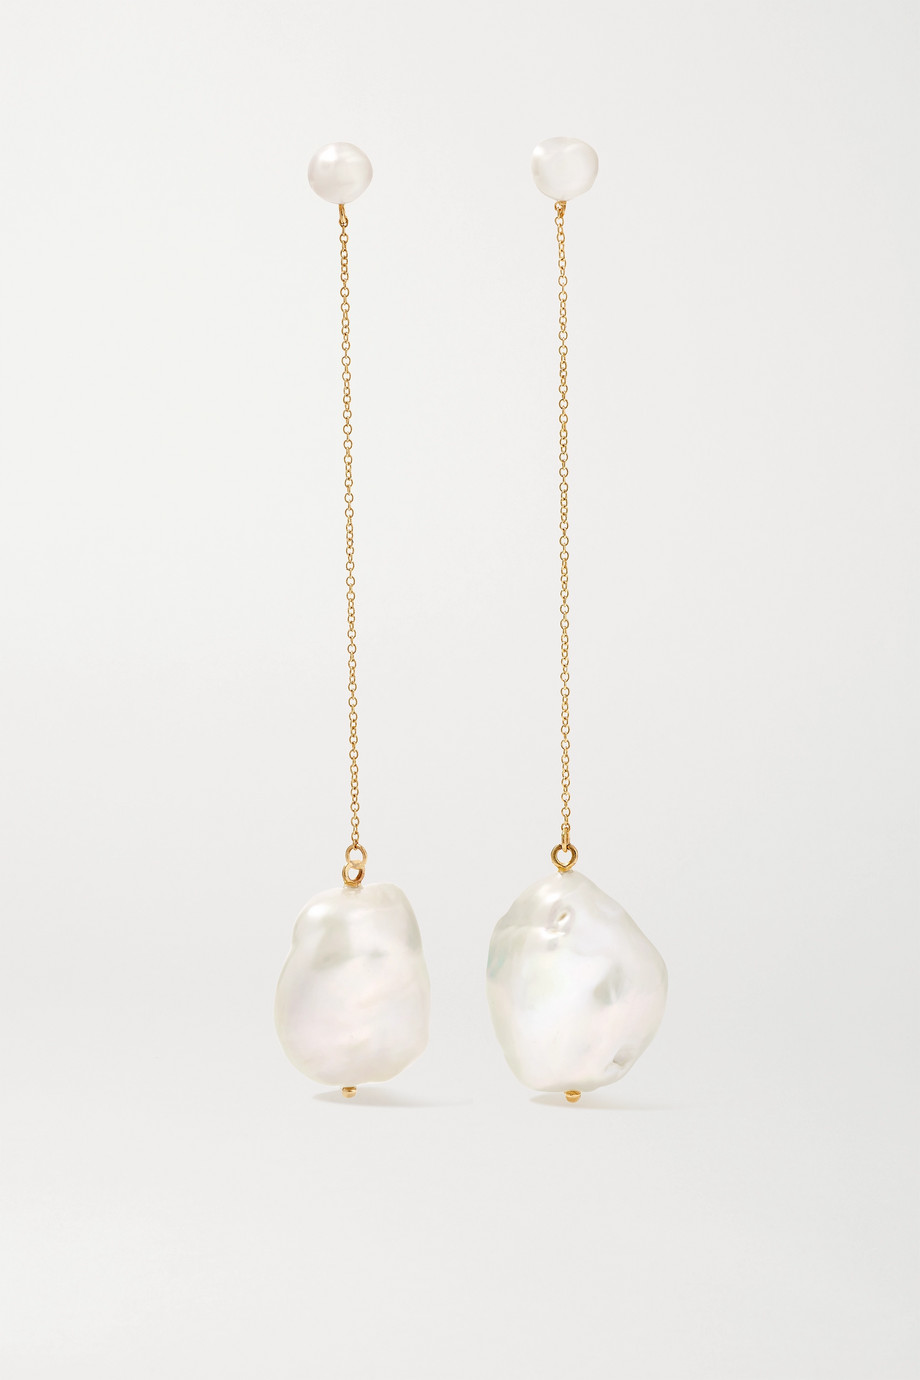 Mateo Duality 14-karat gold pearl earrings